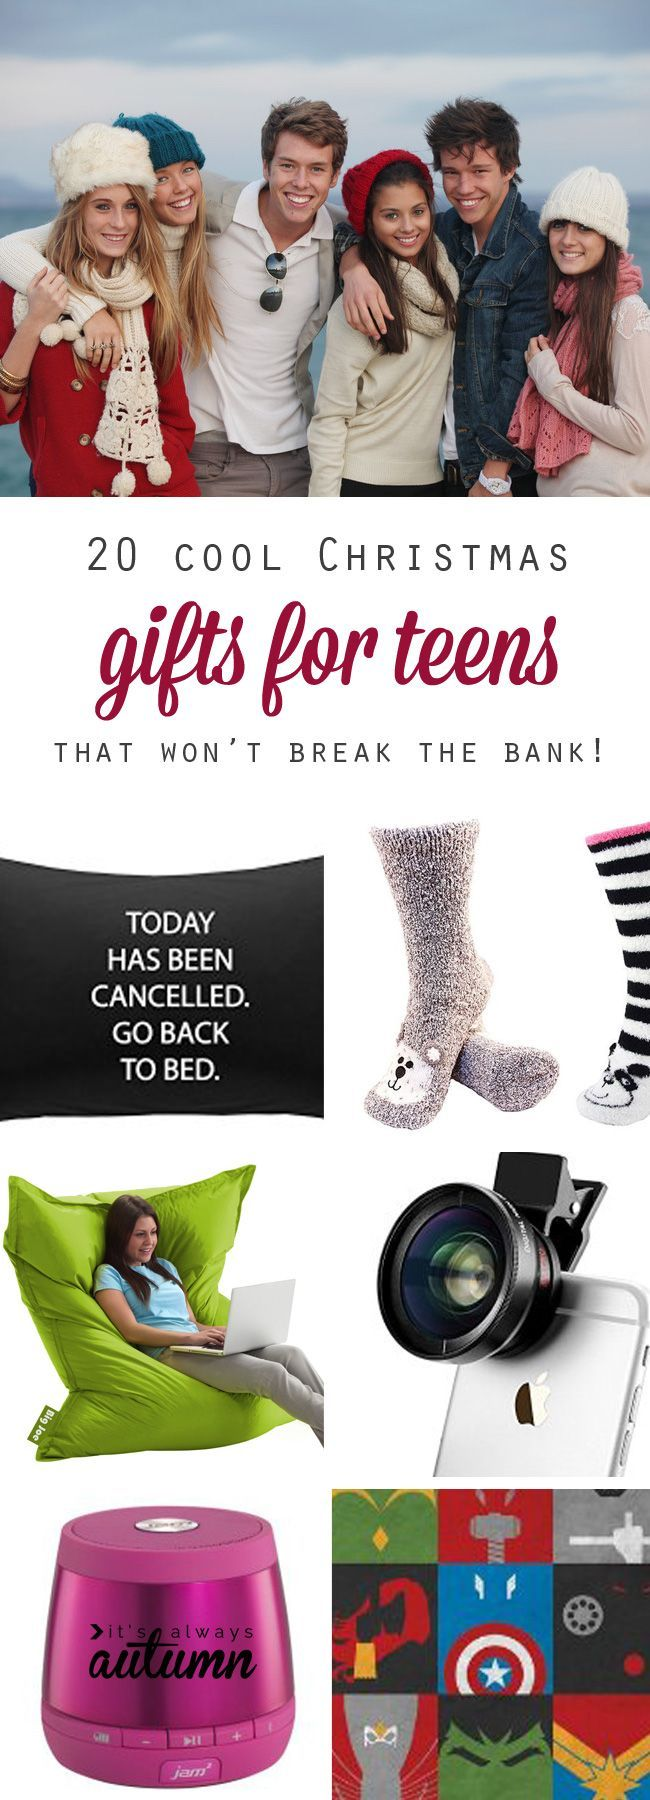 Best Christmas Gift Ideas For Teens